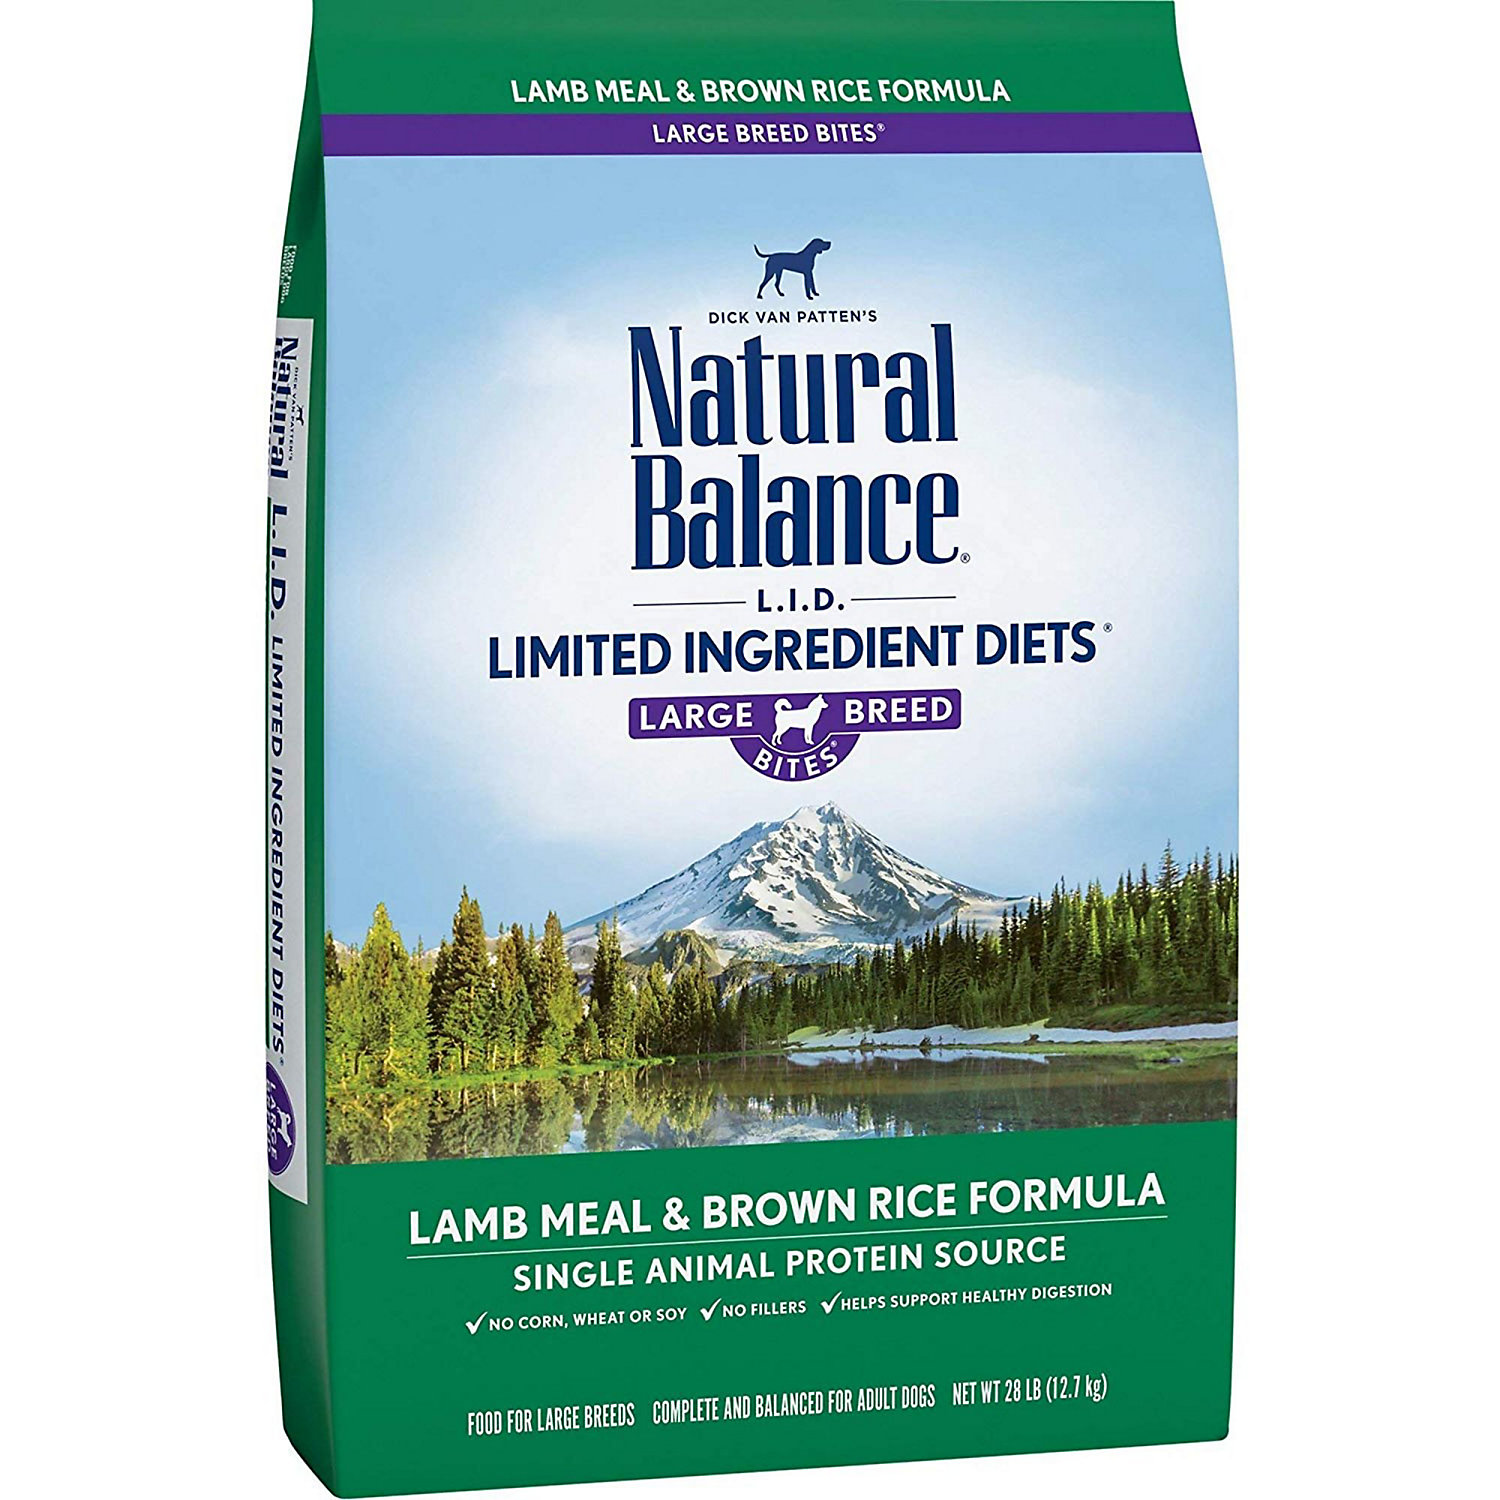 Natural Balance L.I.D. Limited Ingredient Diets Lamb Meal  Brown Rice Formula Large Breed Dog Food 28 lbs.